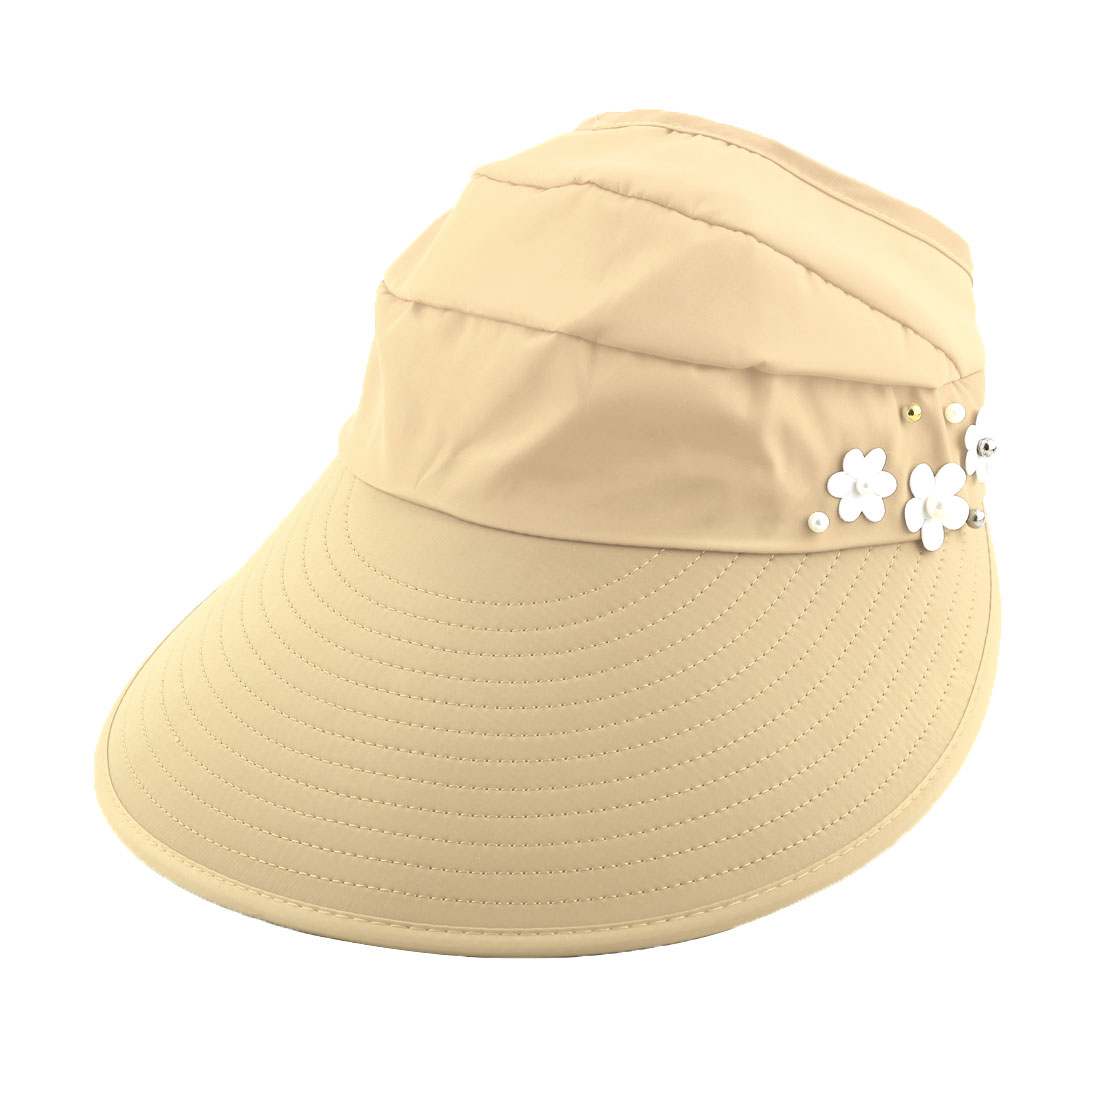 Woman Flower Decor Adjustable Travel Sports Summer Beach Floppy Cap Sun Visor Hat Beige